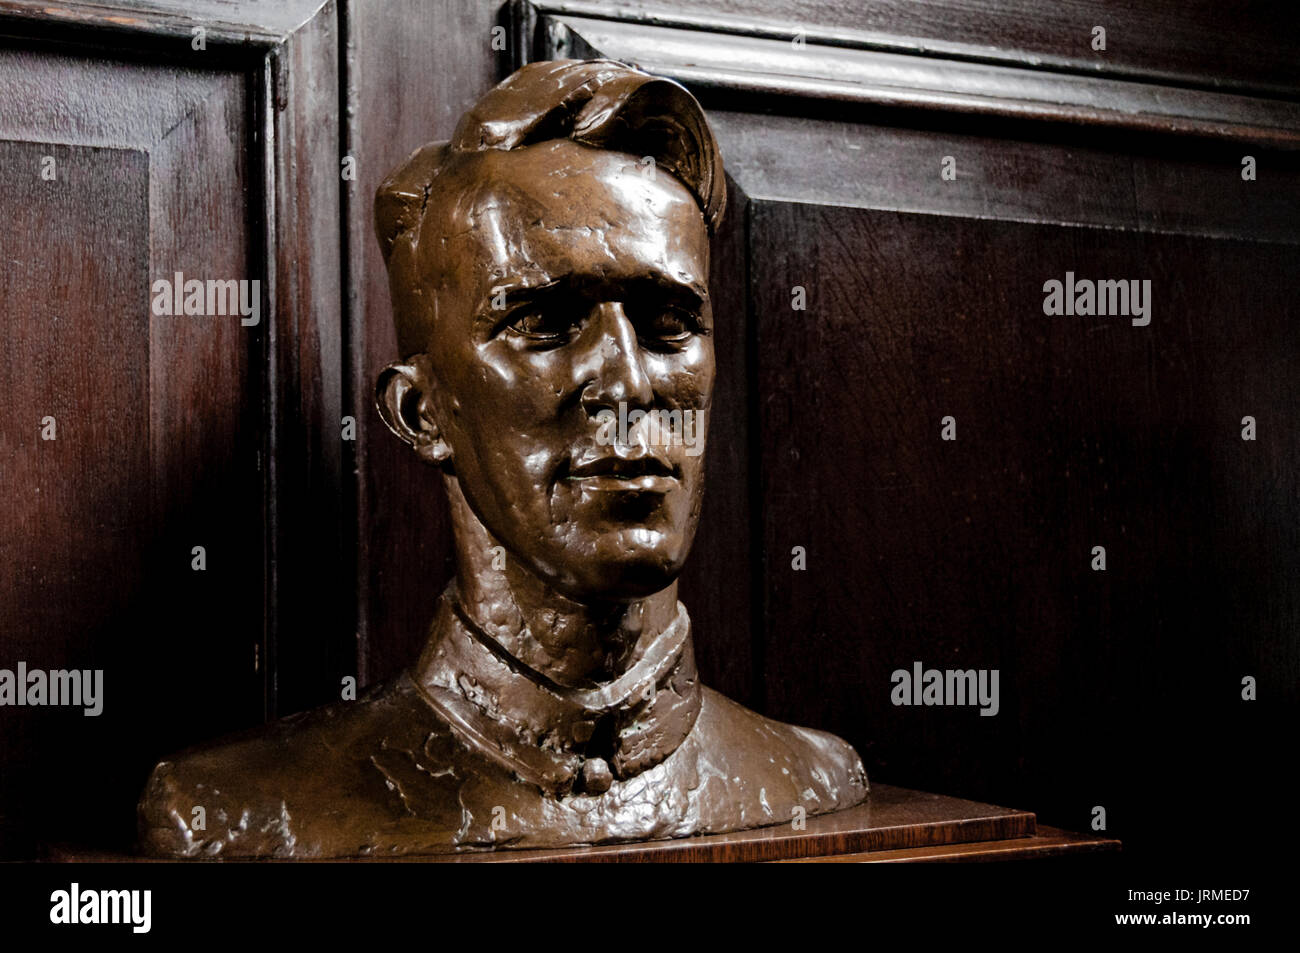 Oxford, Jesus College: Bust of T.E.Lawrence i.e. Lawrence of Arbaia - Stock Image